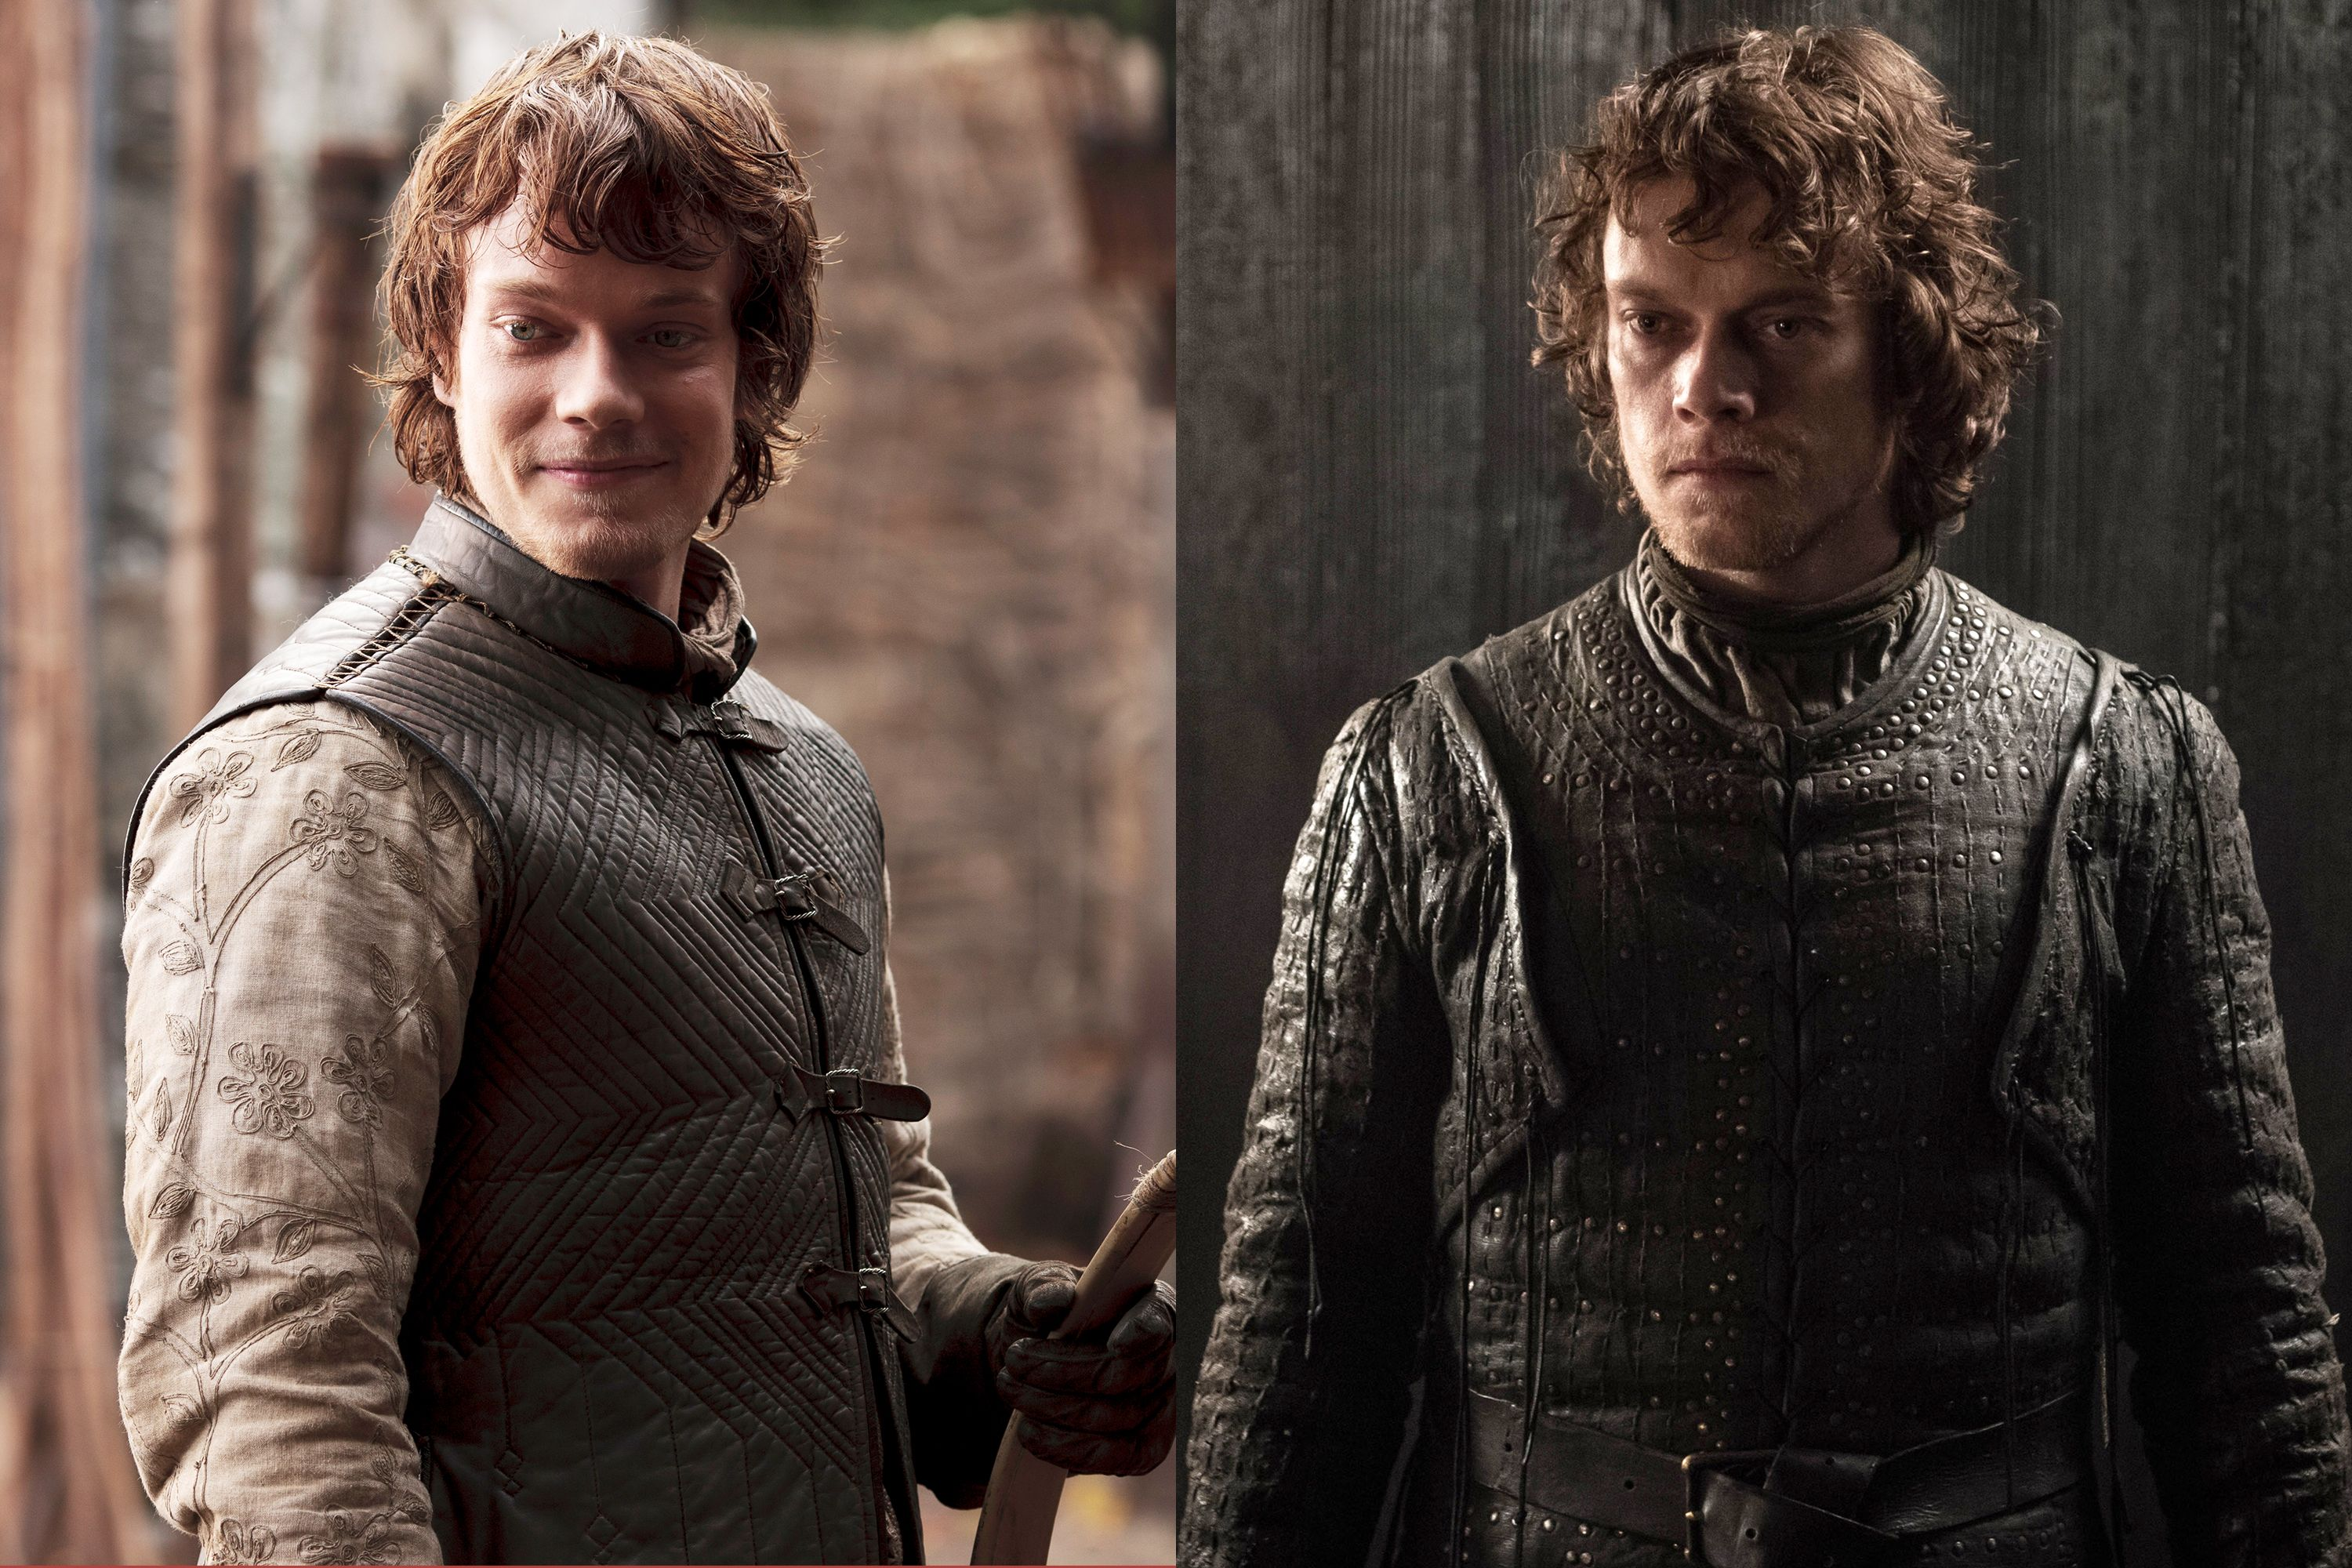 Game of Thrones Cast Then and Now